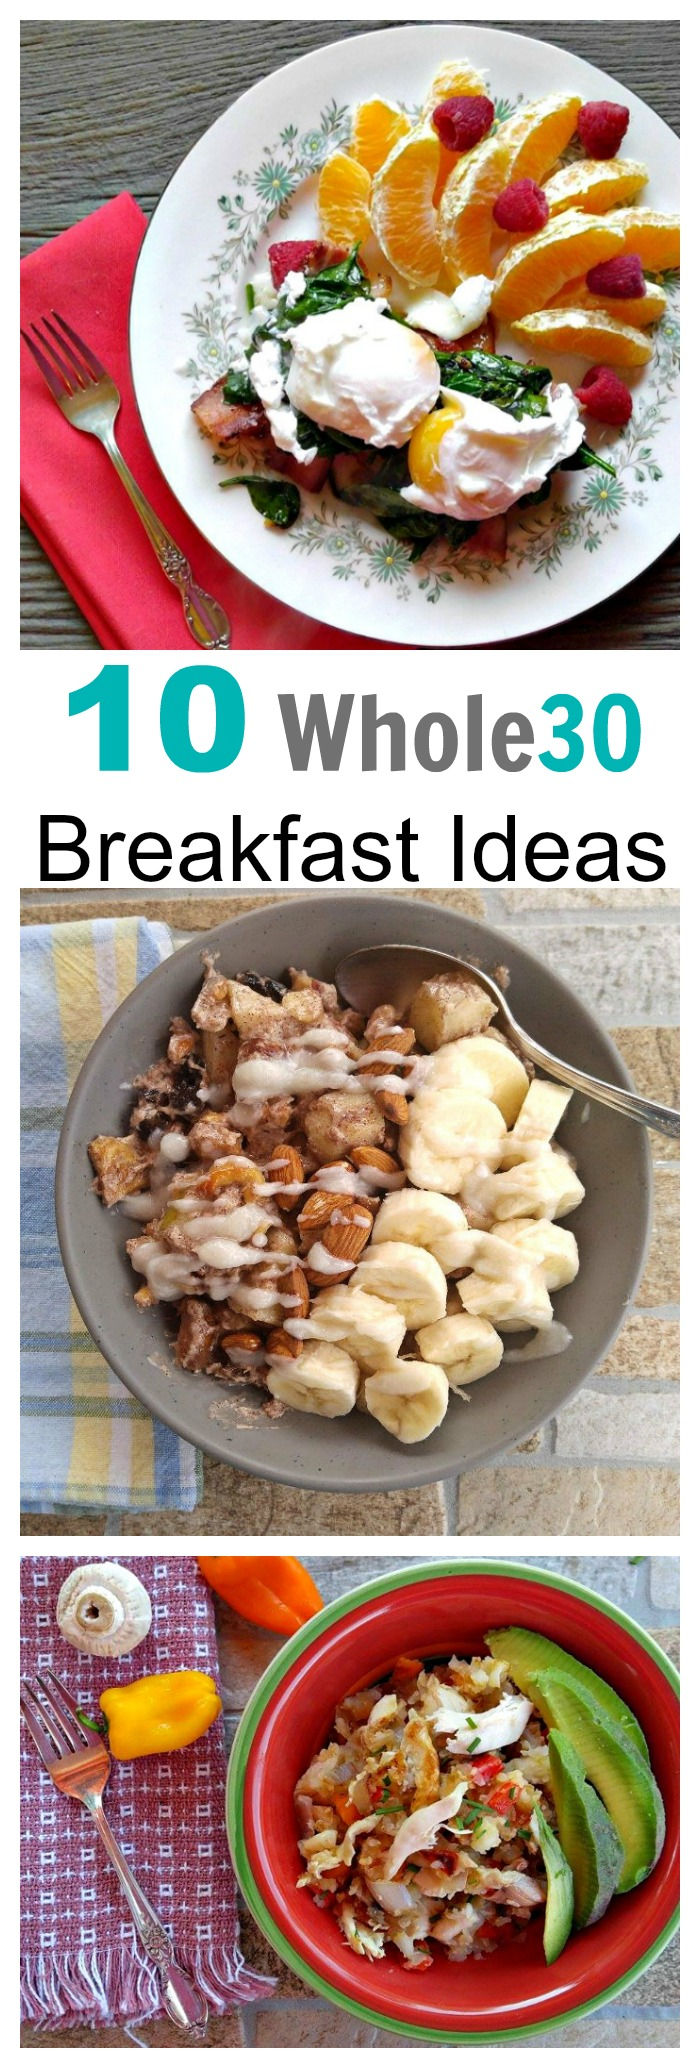 These 10 Whole30 breakfast recipes are easy to make and tasty and filling. Get some variety into your morning routine with one of these ideas.